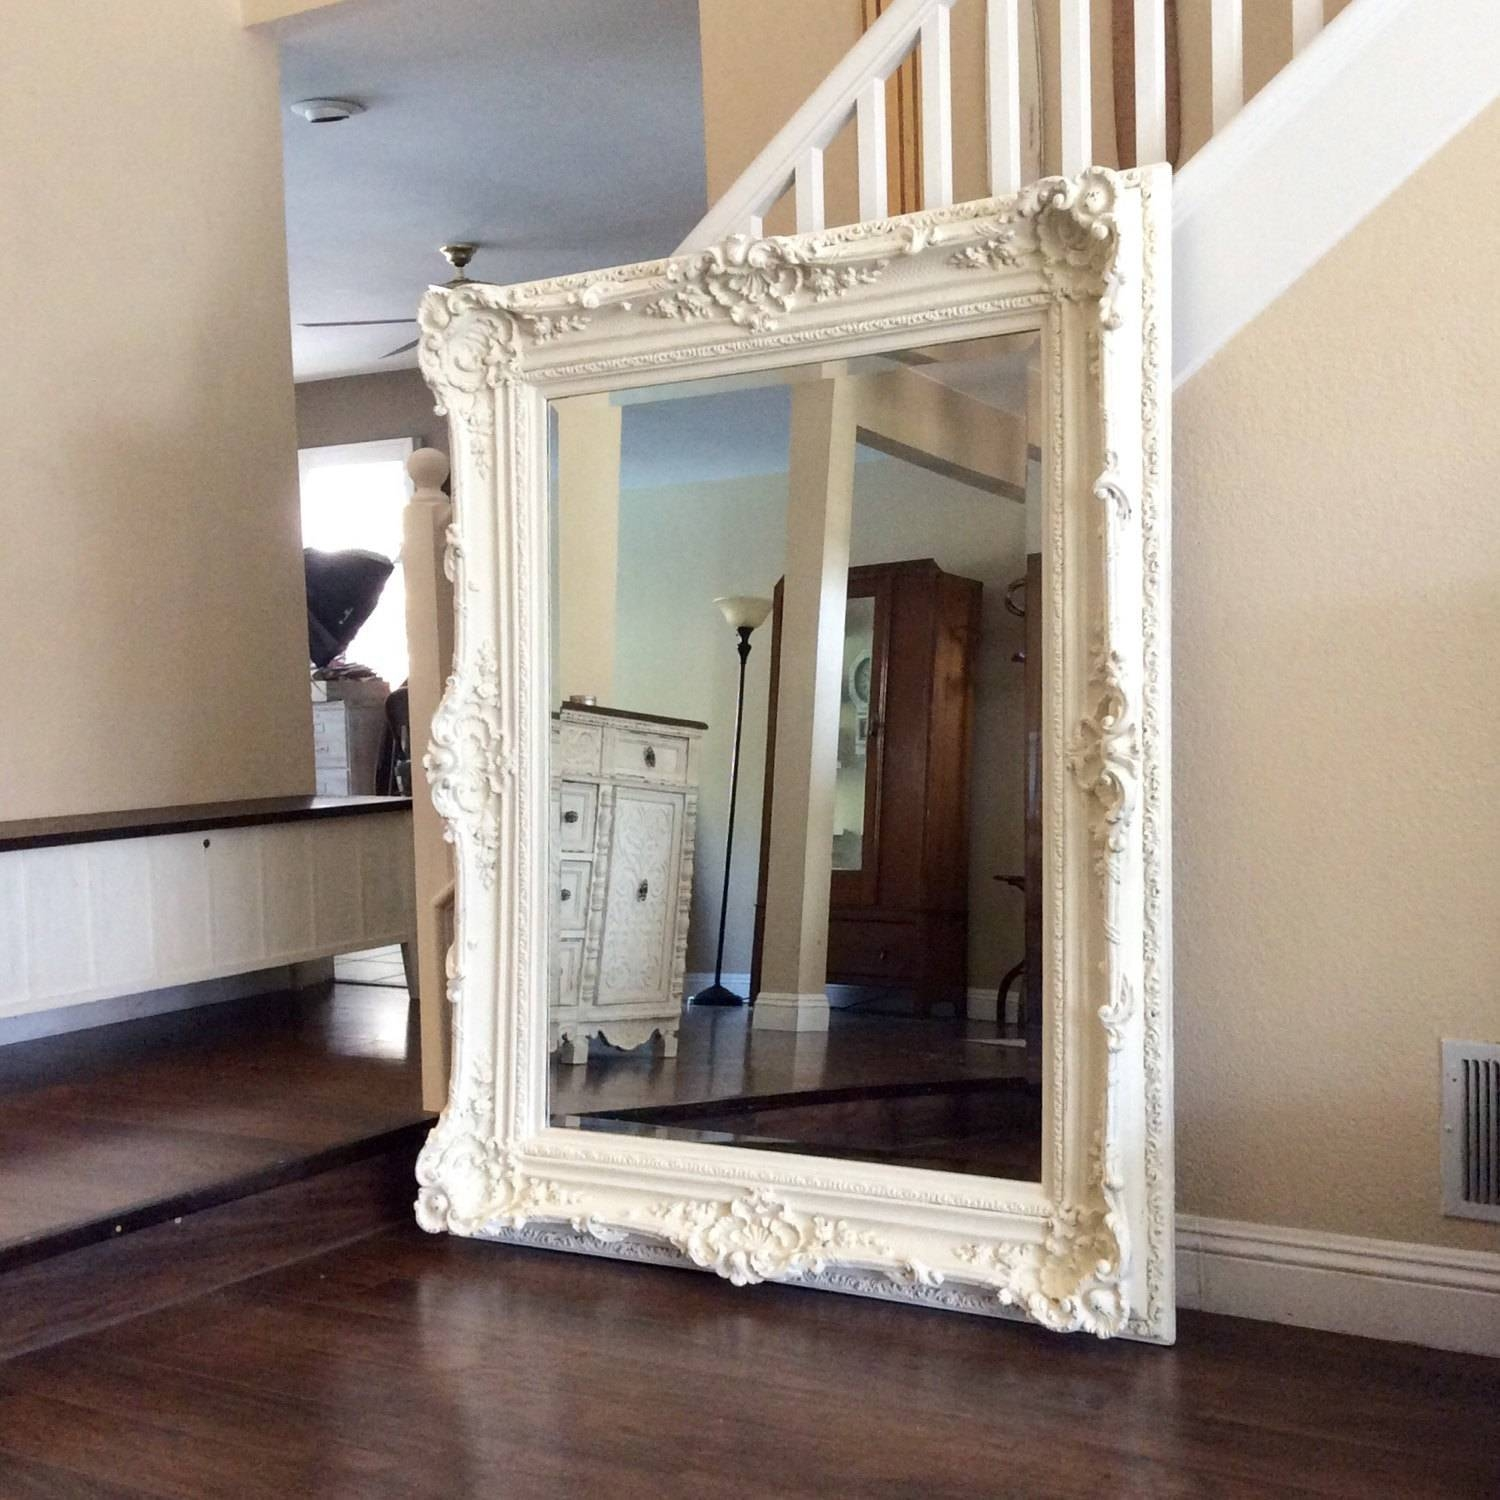 Ornate Mirror For Sale, Large White Mirror, Shabby Chic Wall pertaining to Large White Shabby Chic Mirrors (Image 10 of 15)